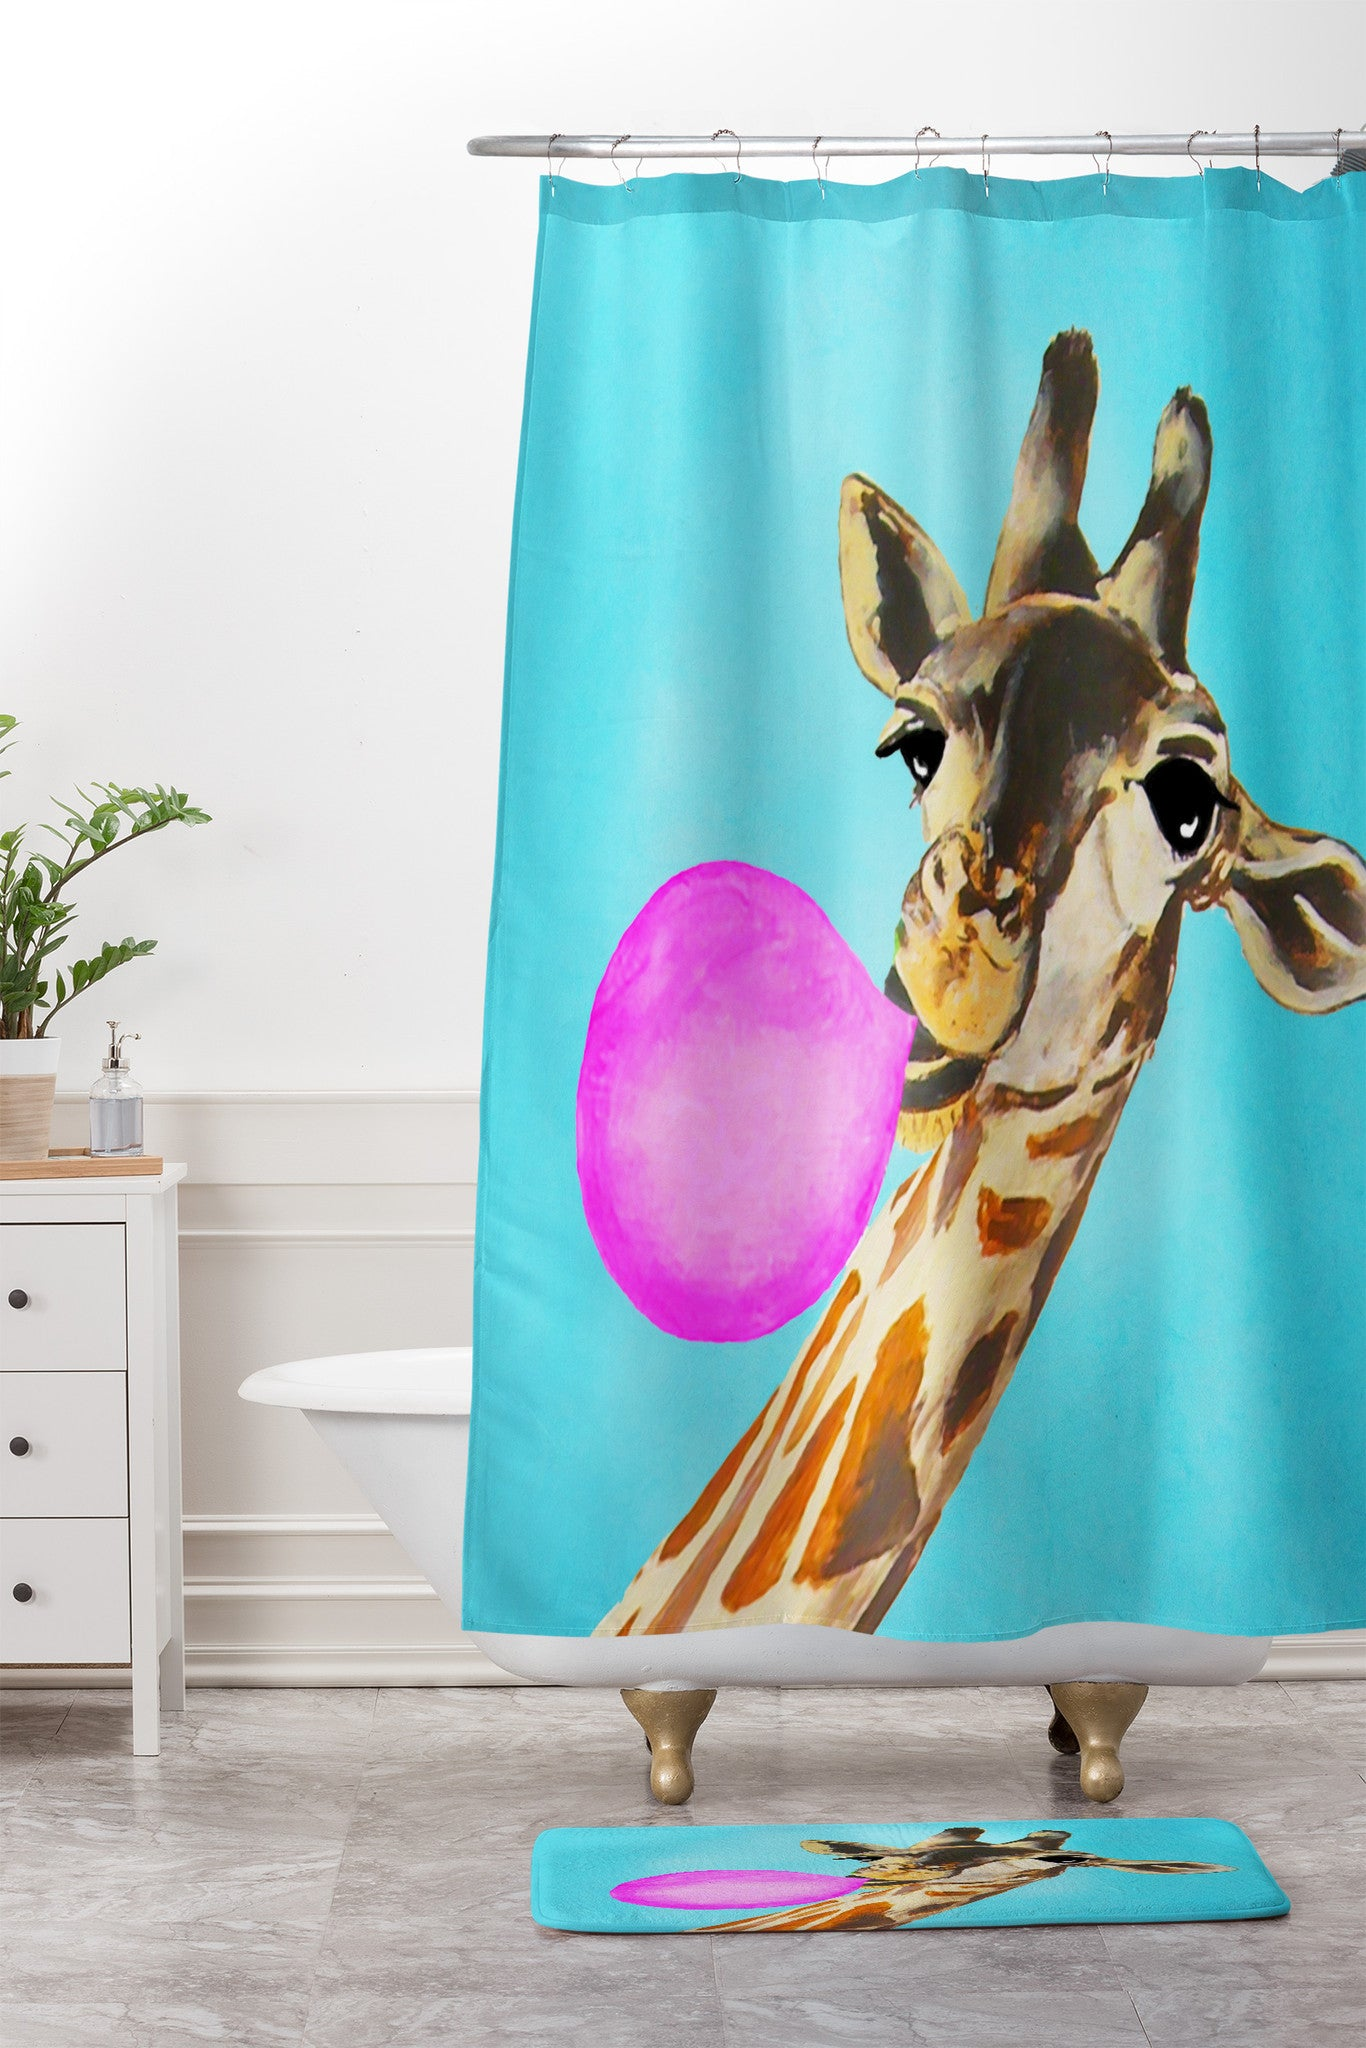 Coco De Paris Giraffe Blowing Bubblegum Shower Curtain And Mat